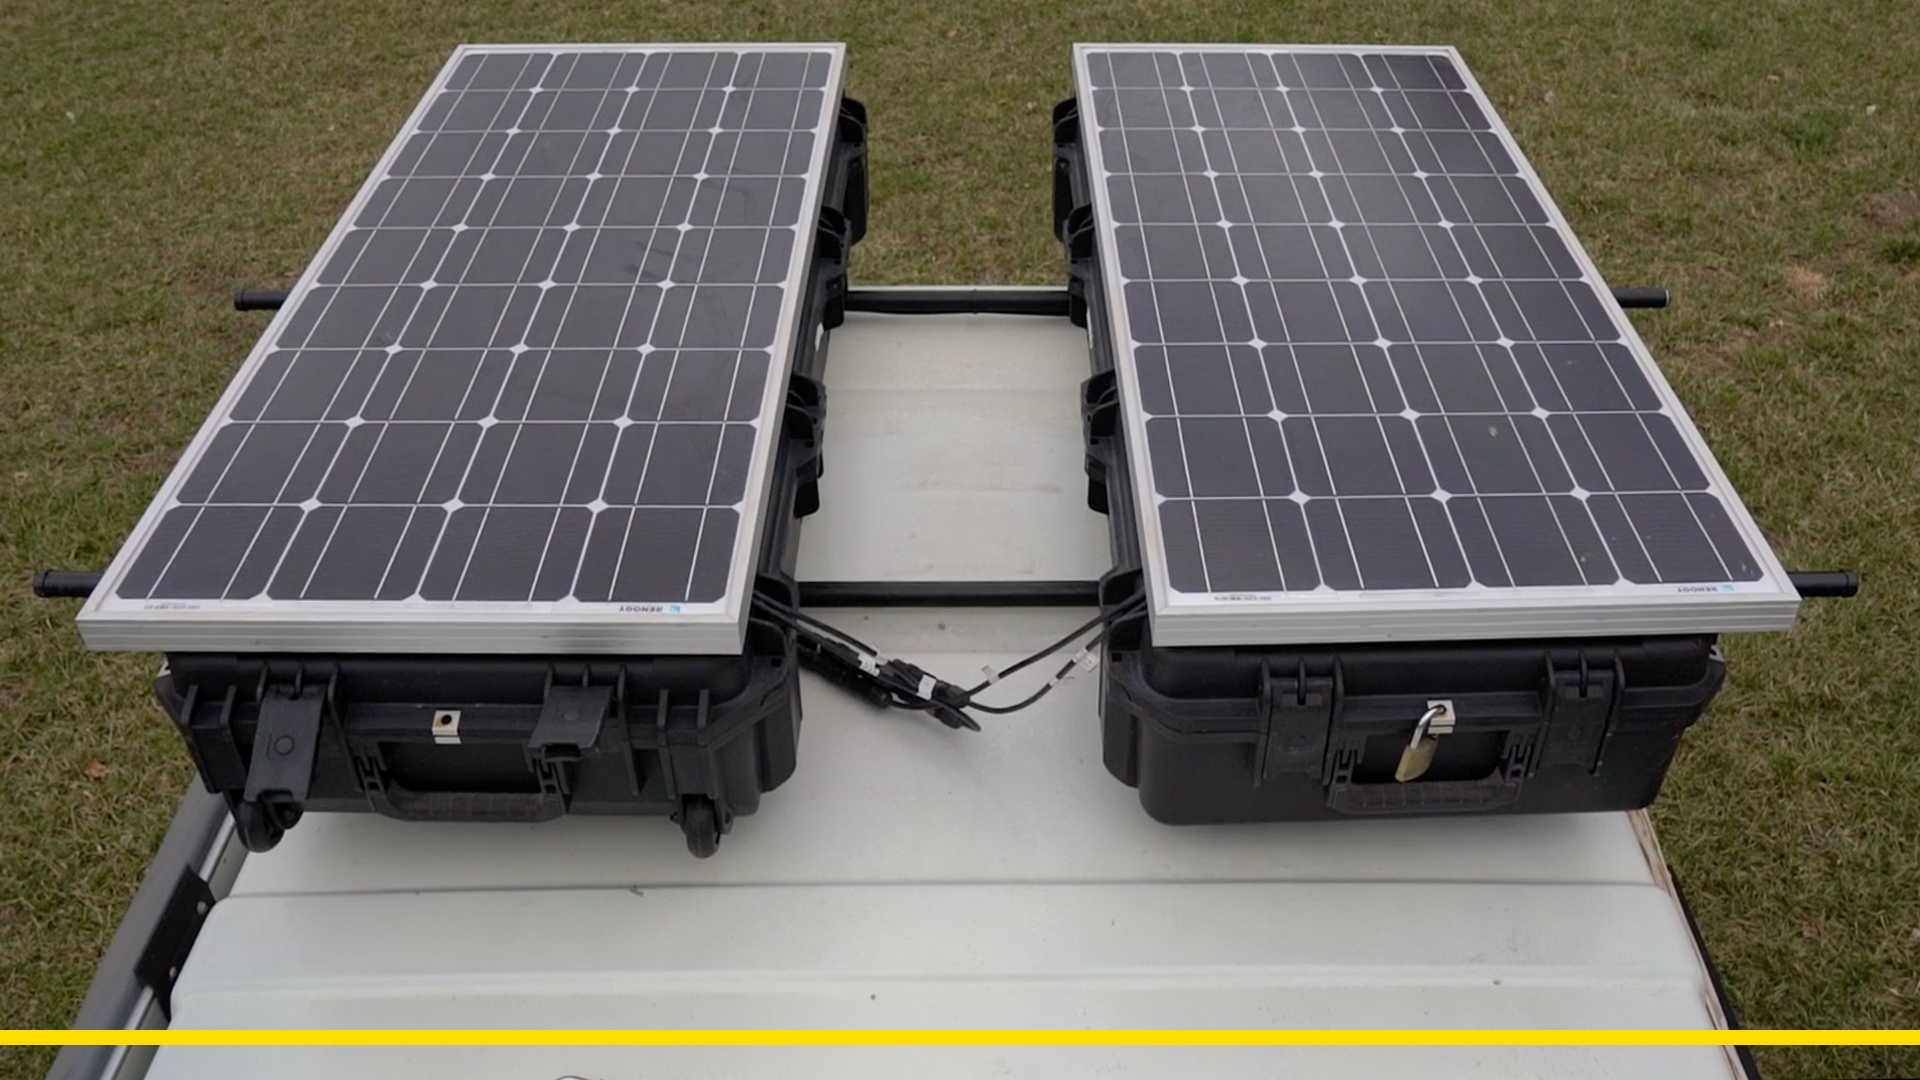 Solar Panels On Rifle Cases Live Work Wander